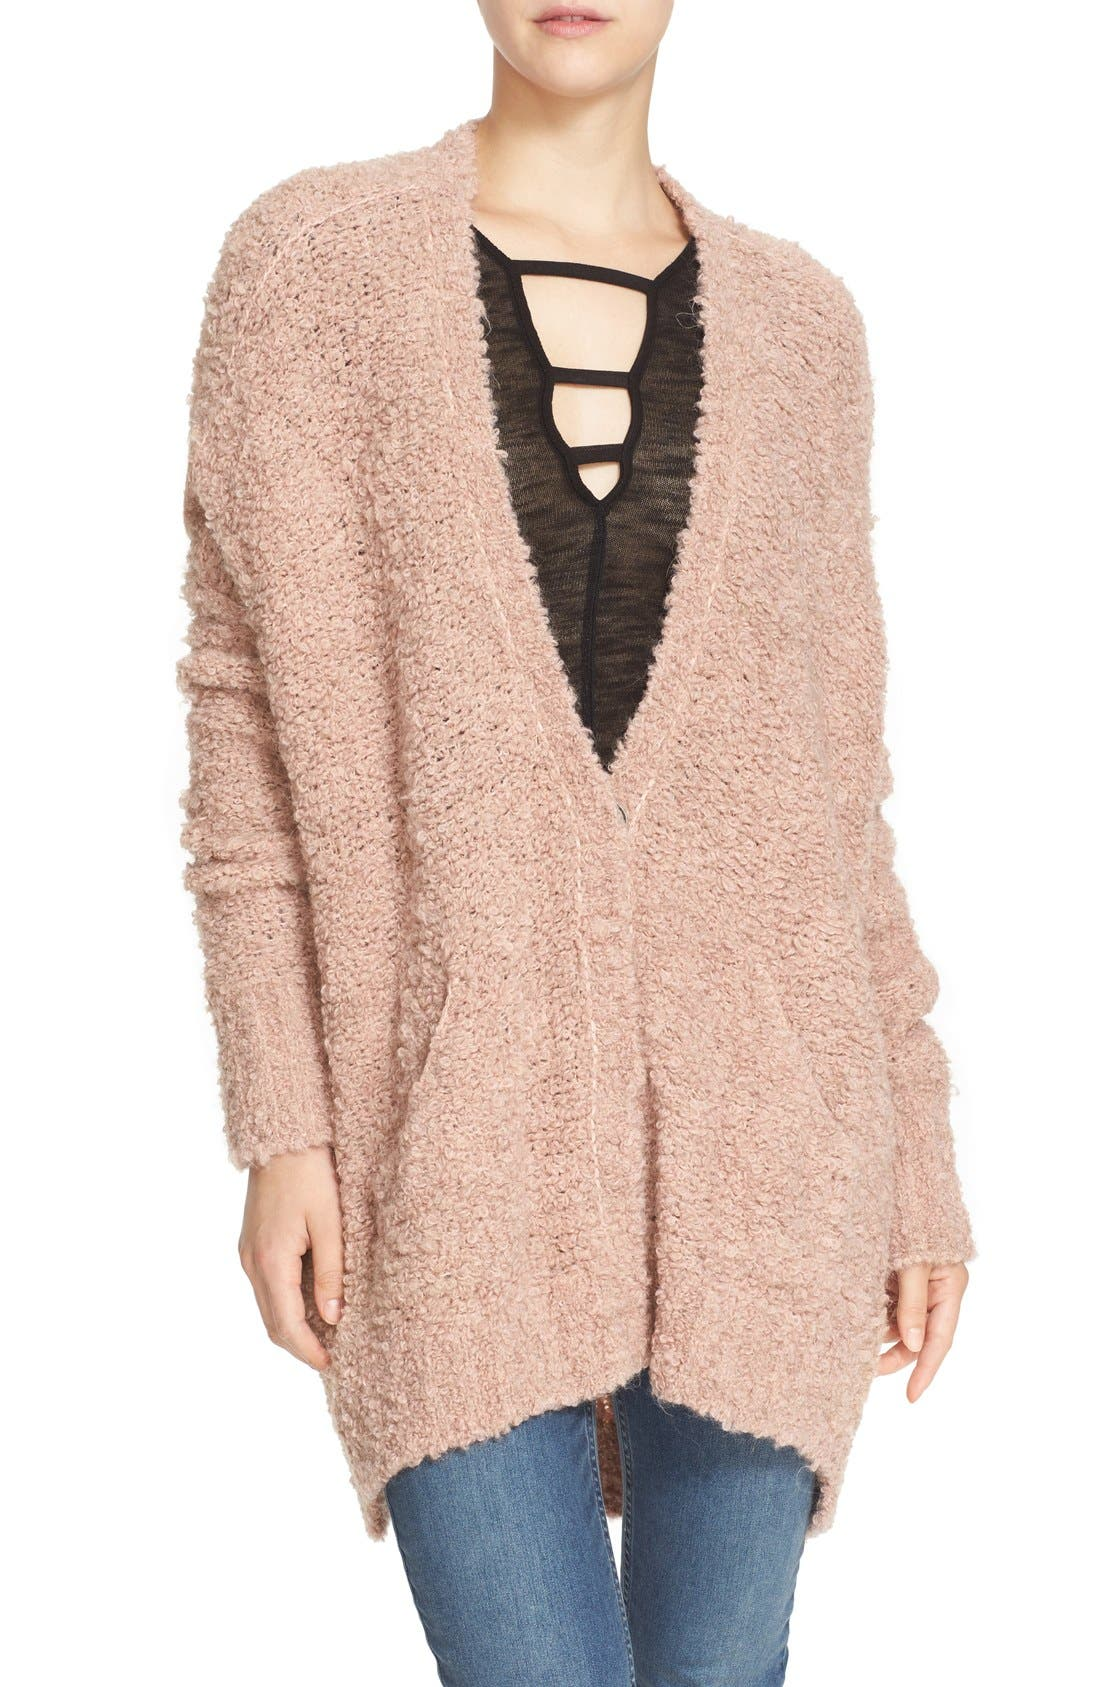 Alternate Image 1 Selected - Free People Bouclé V-Neck Cardigan